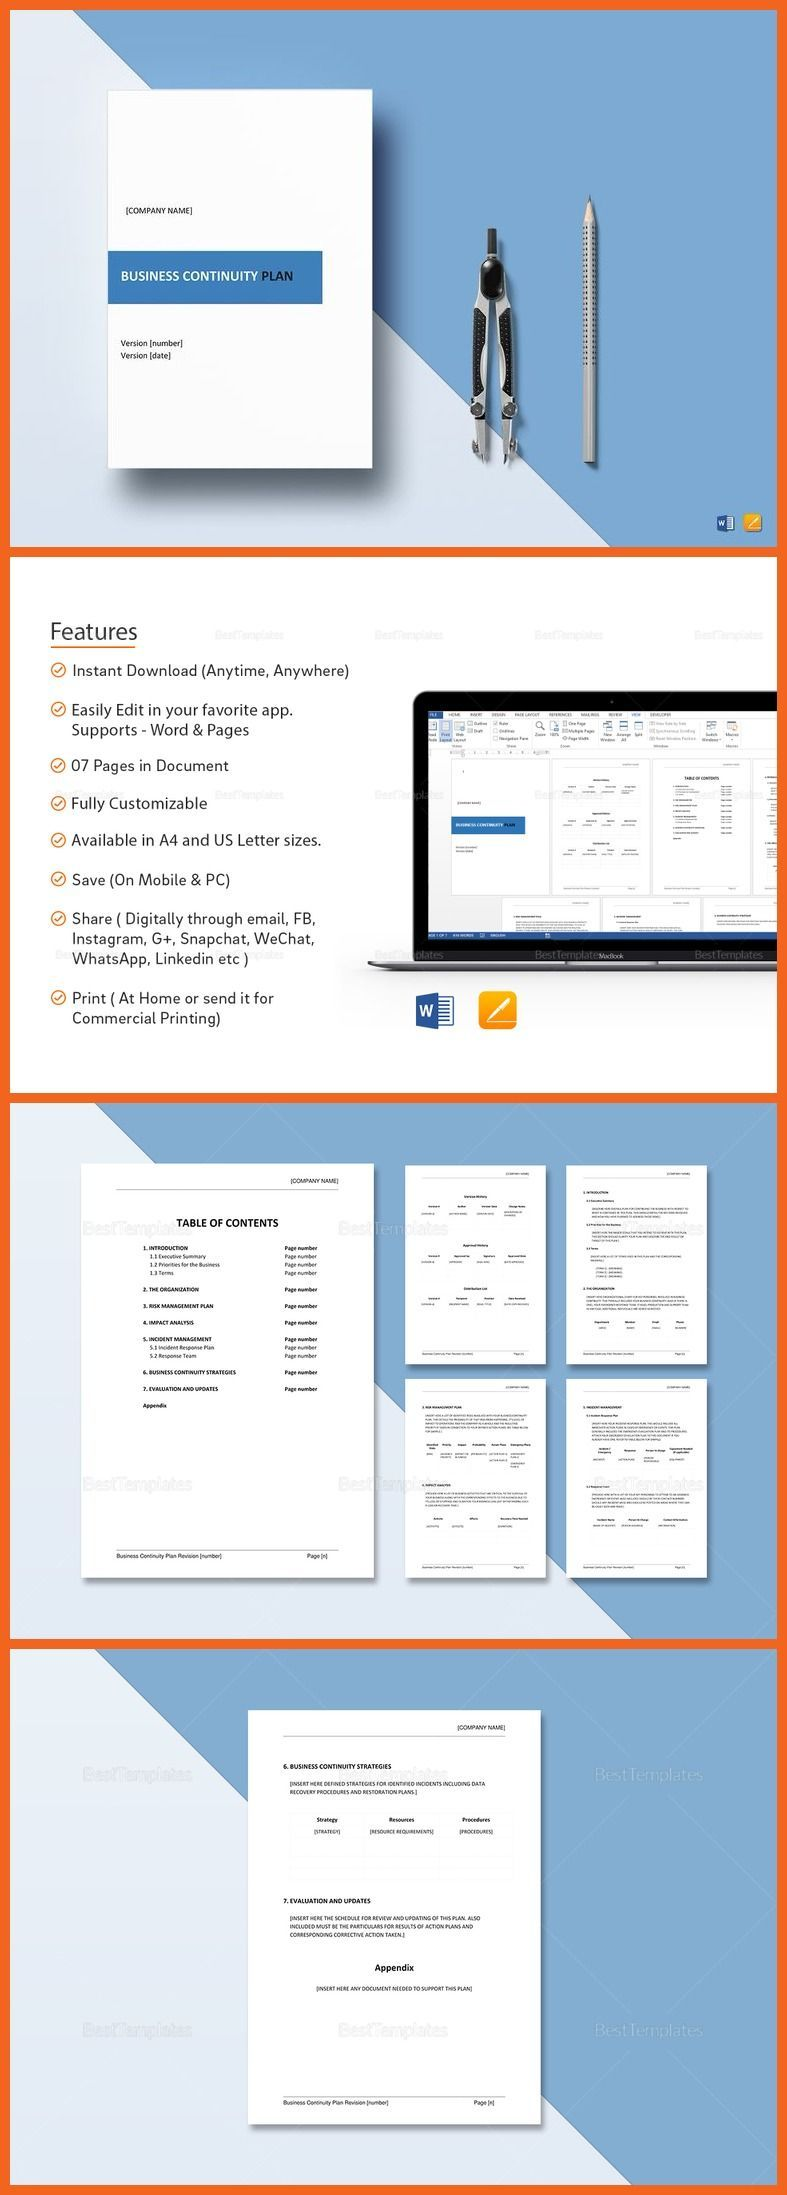 Business Continuity Plan Template Business continuity